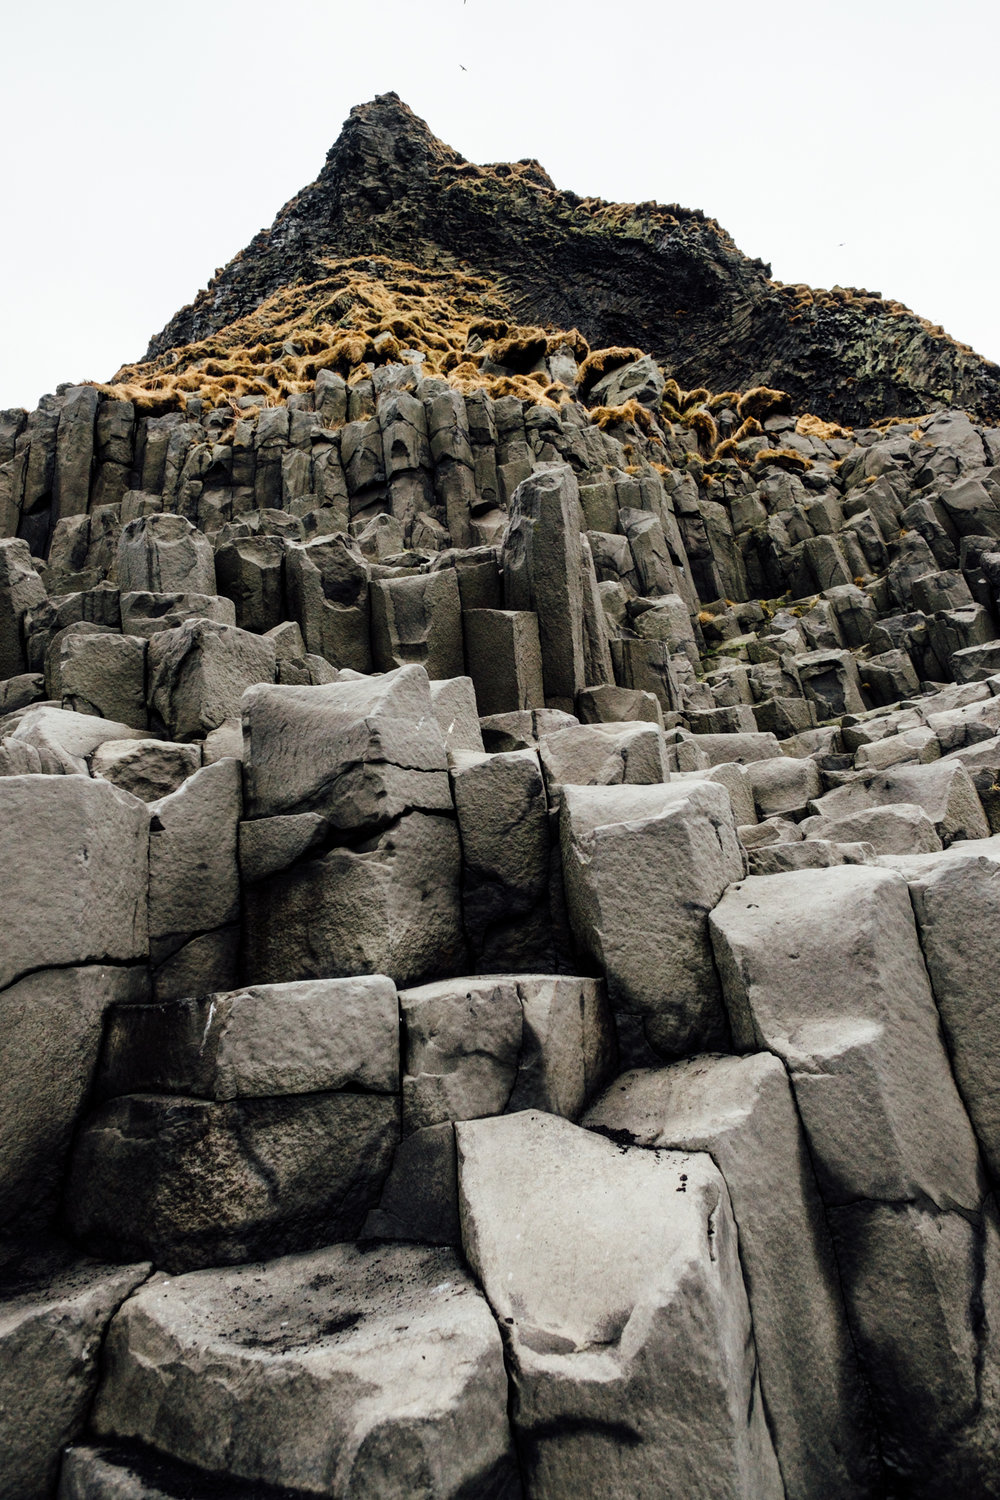 A better view of the basalt columns at Reynisfjara. The columns are formed by  fractures from slow-cooling lava.